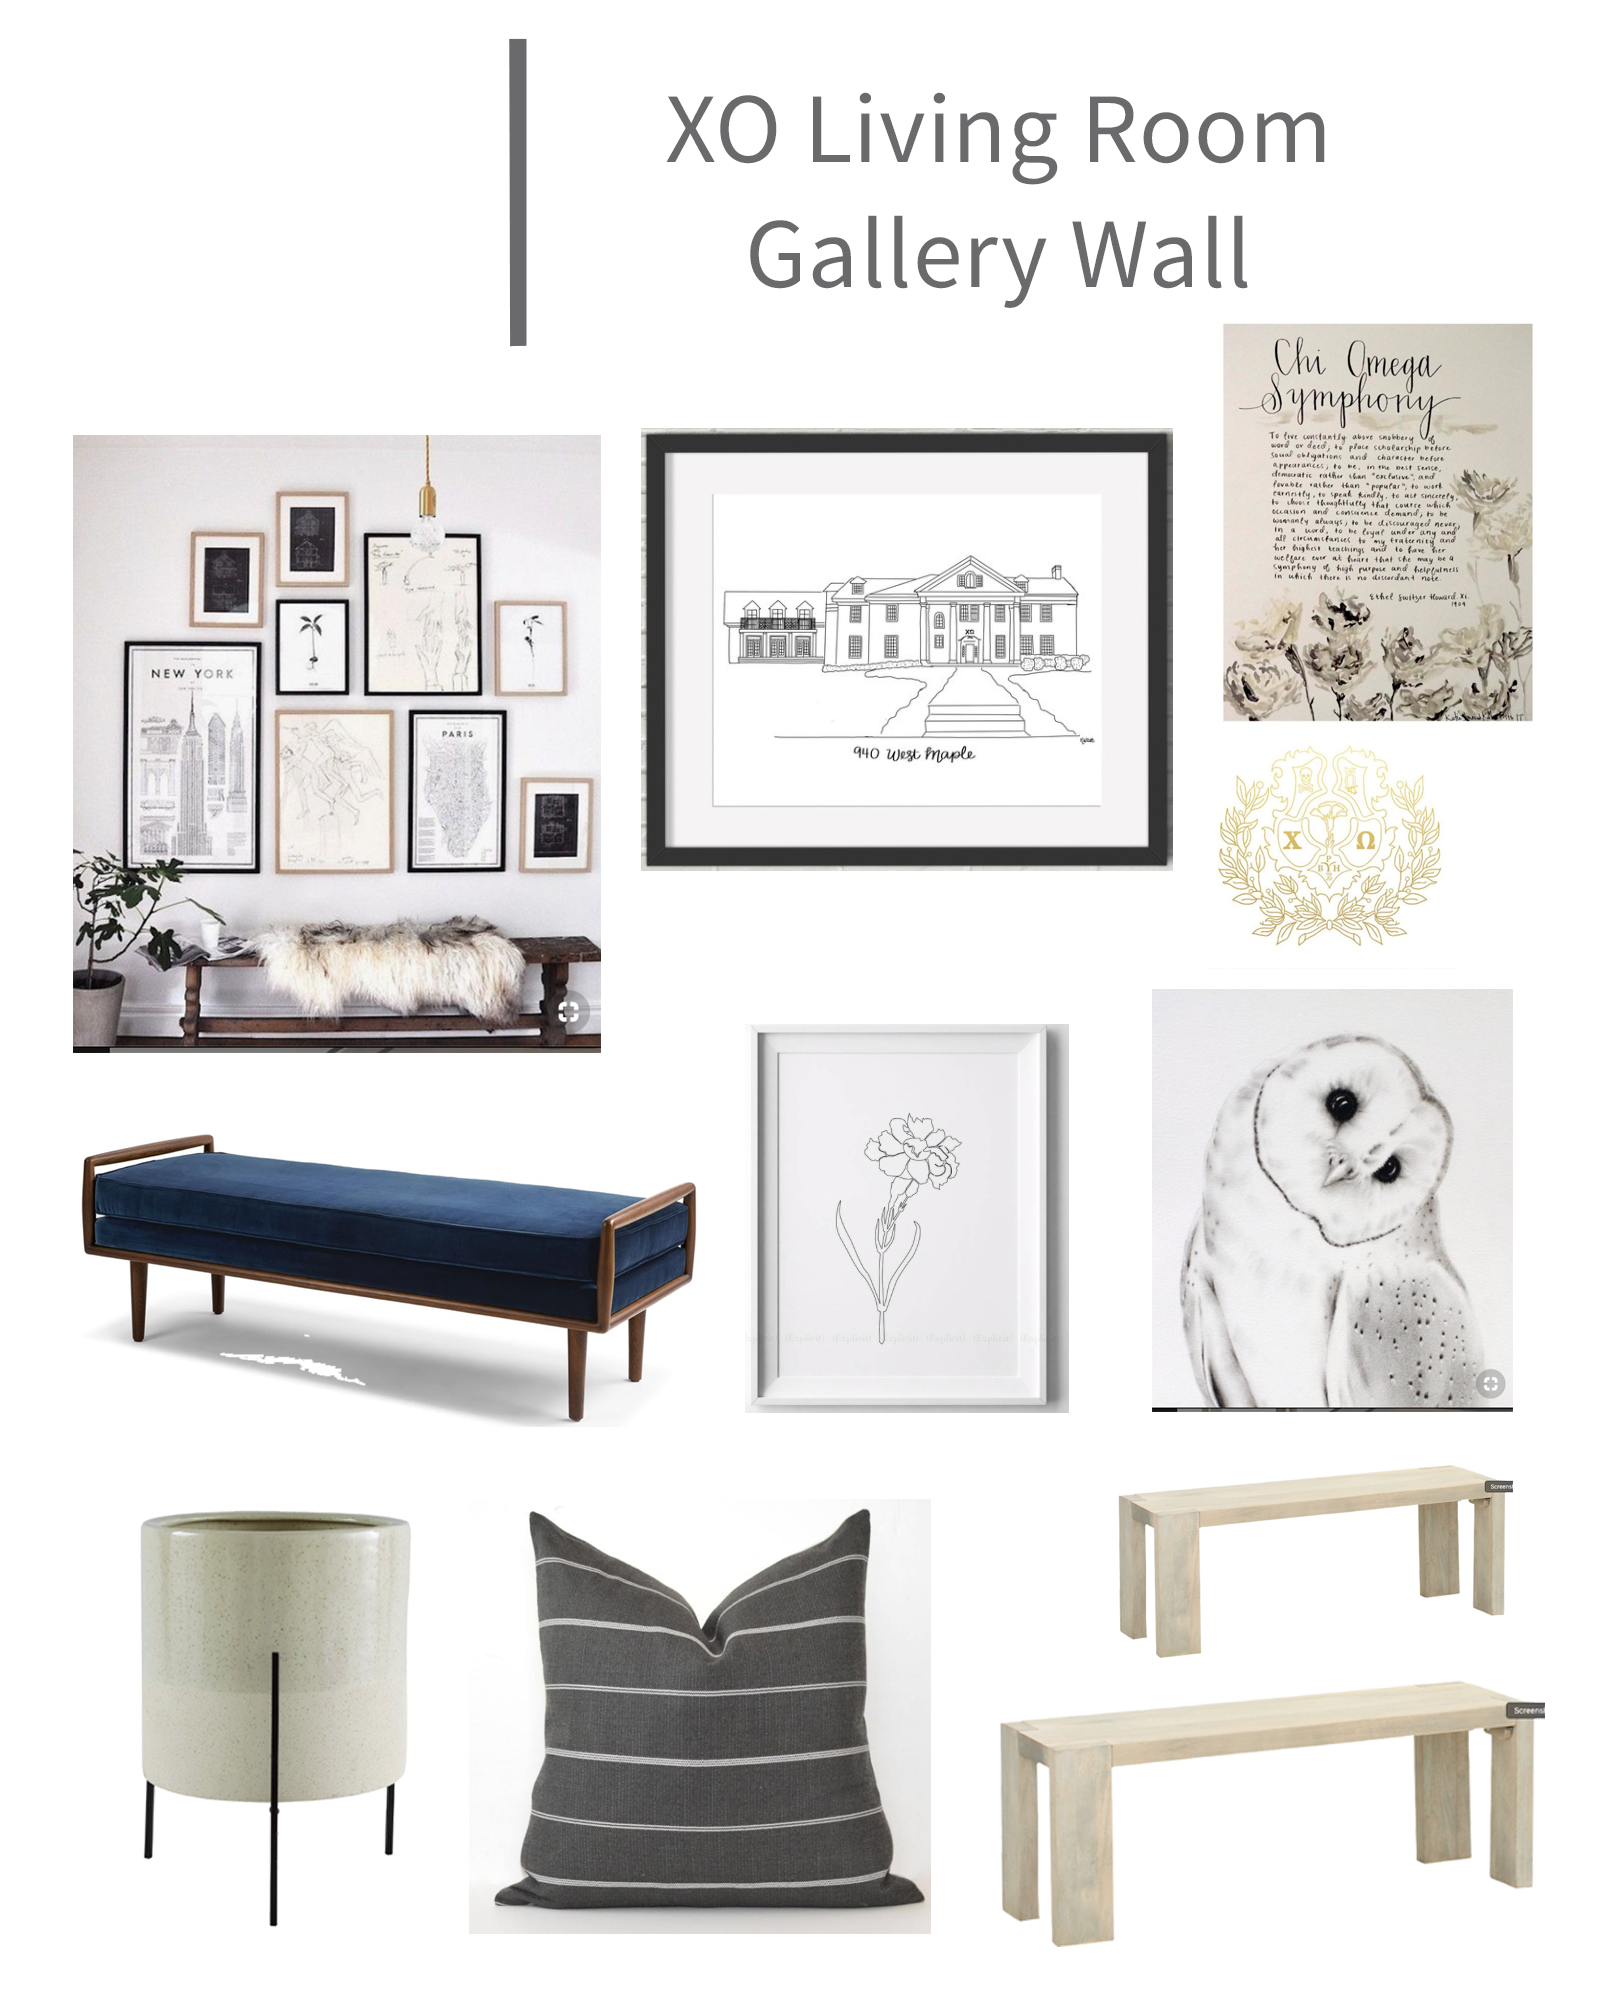 designing- multiple-seating-areas-in-this-livingroom-Gallery-Wall.png